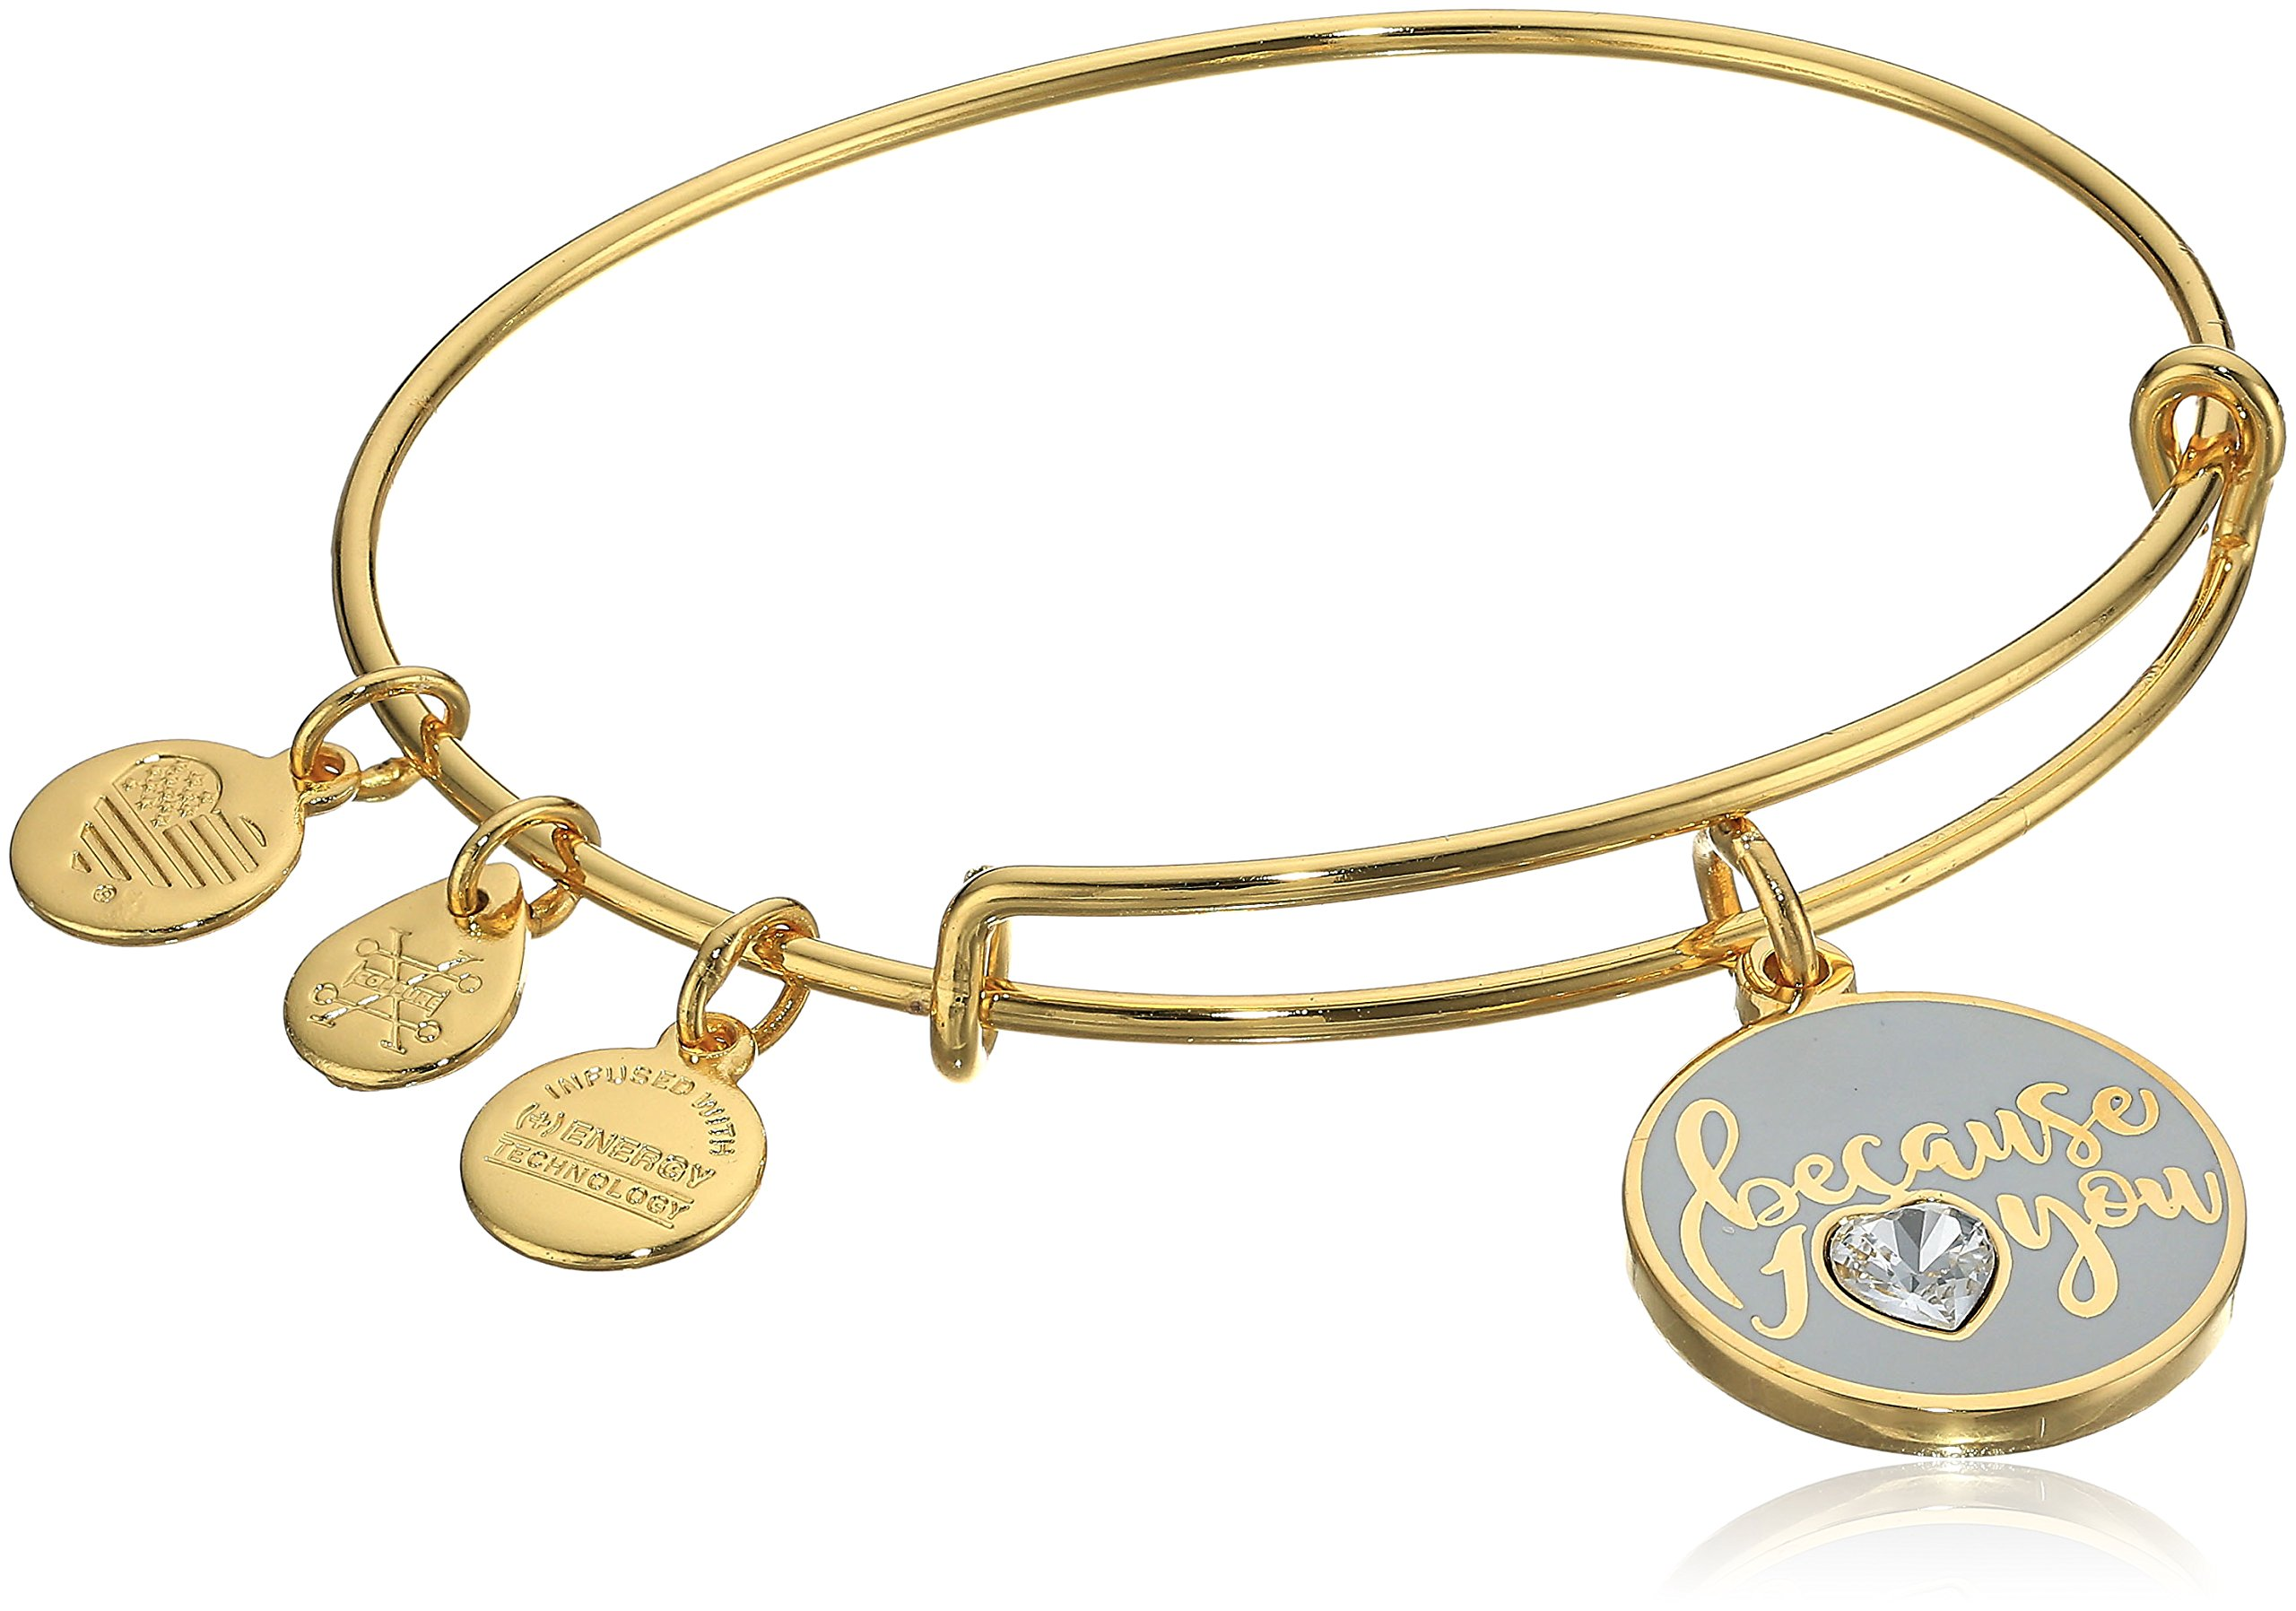 Alex and Ani Because I Love You With Swarovski Crystal Shiny Gold Bangle Bracelet